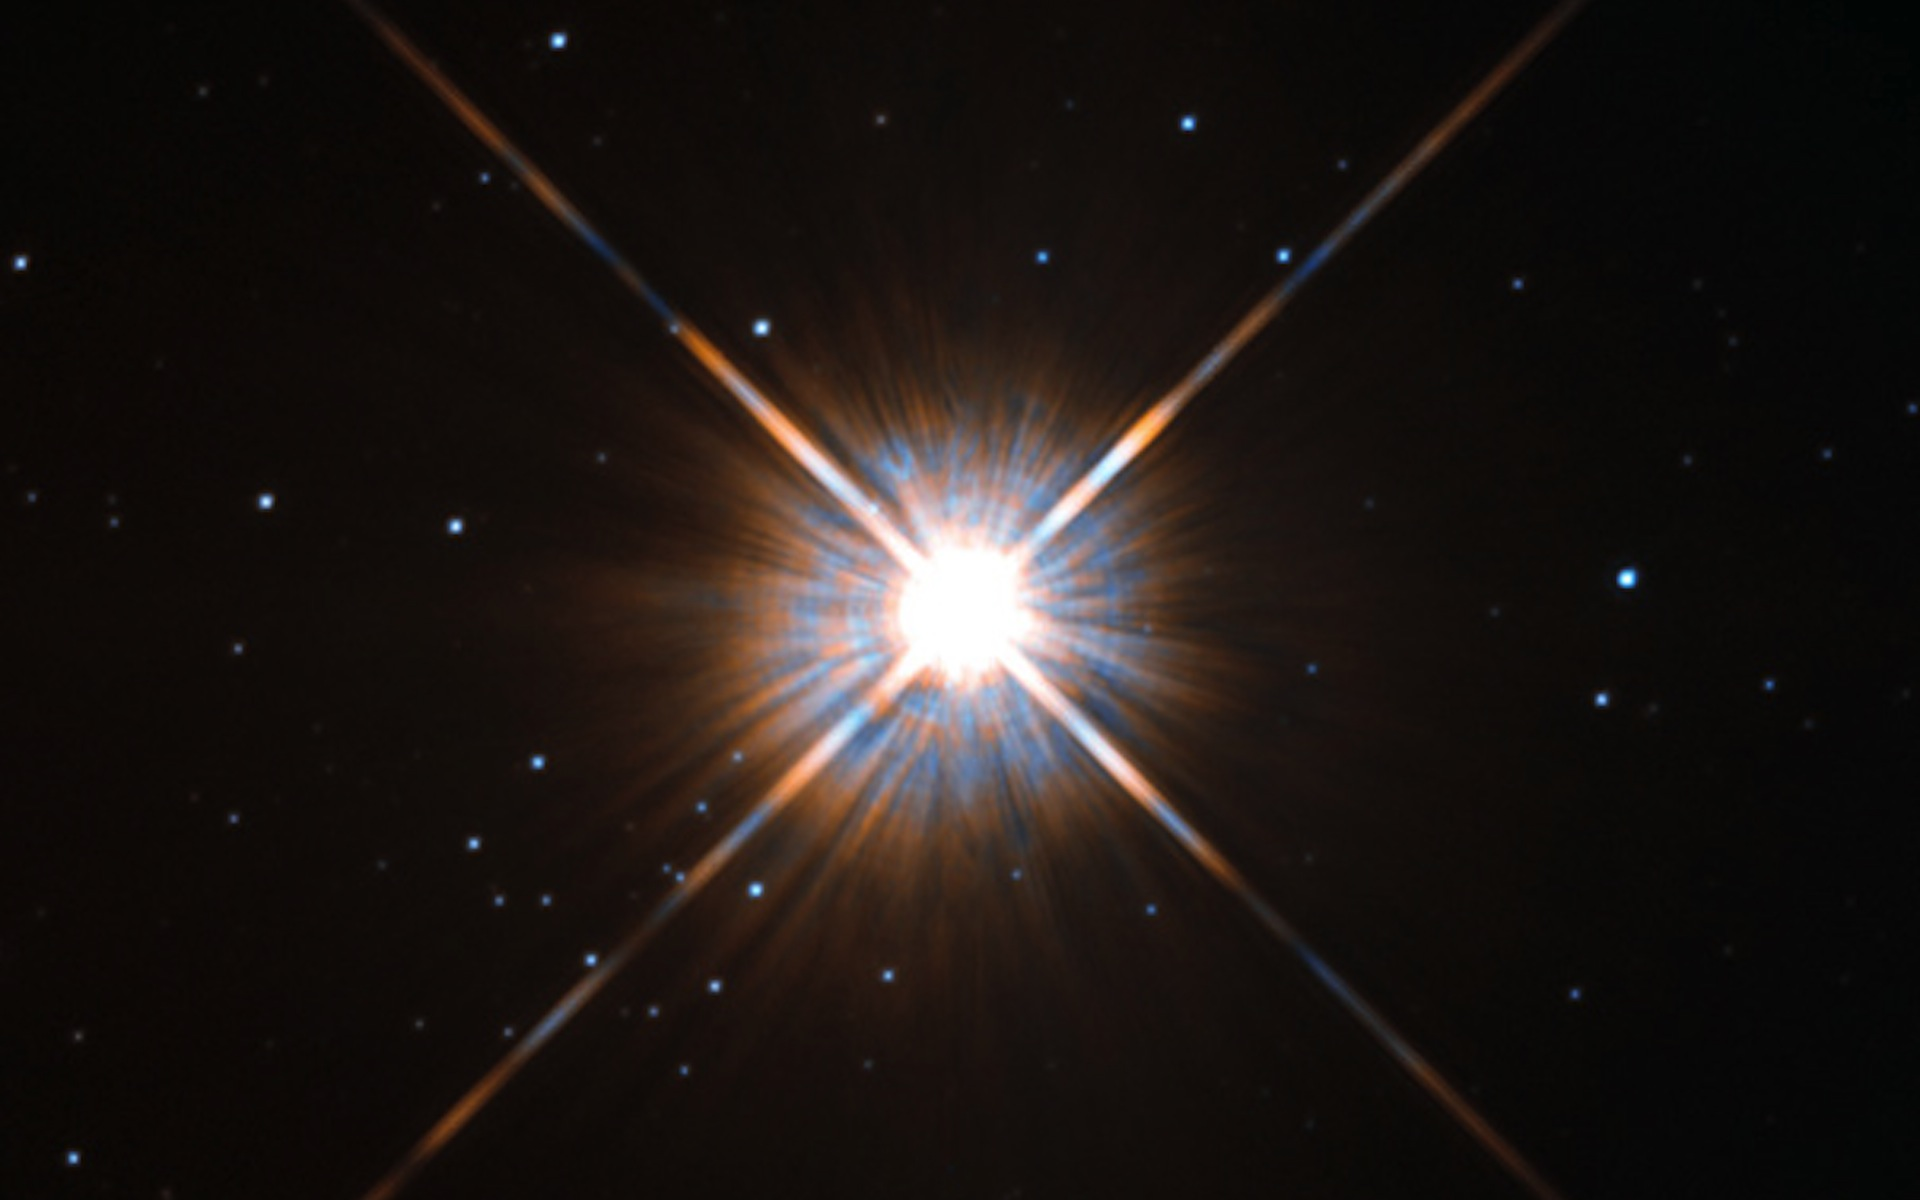 hubble telescope pictures of two suns - photo #22